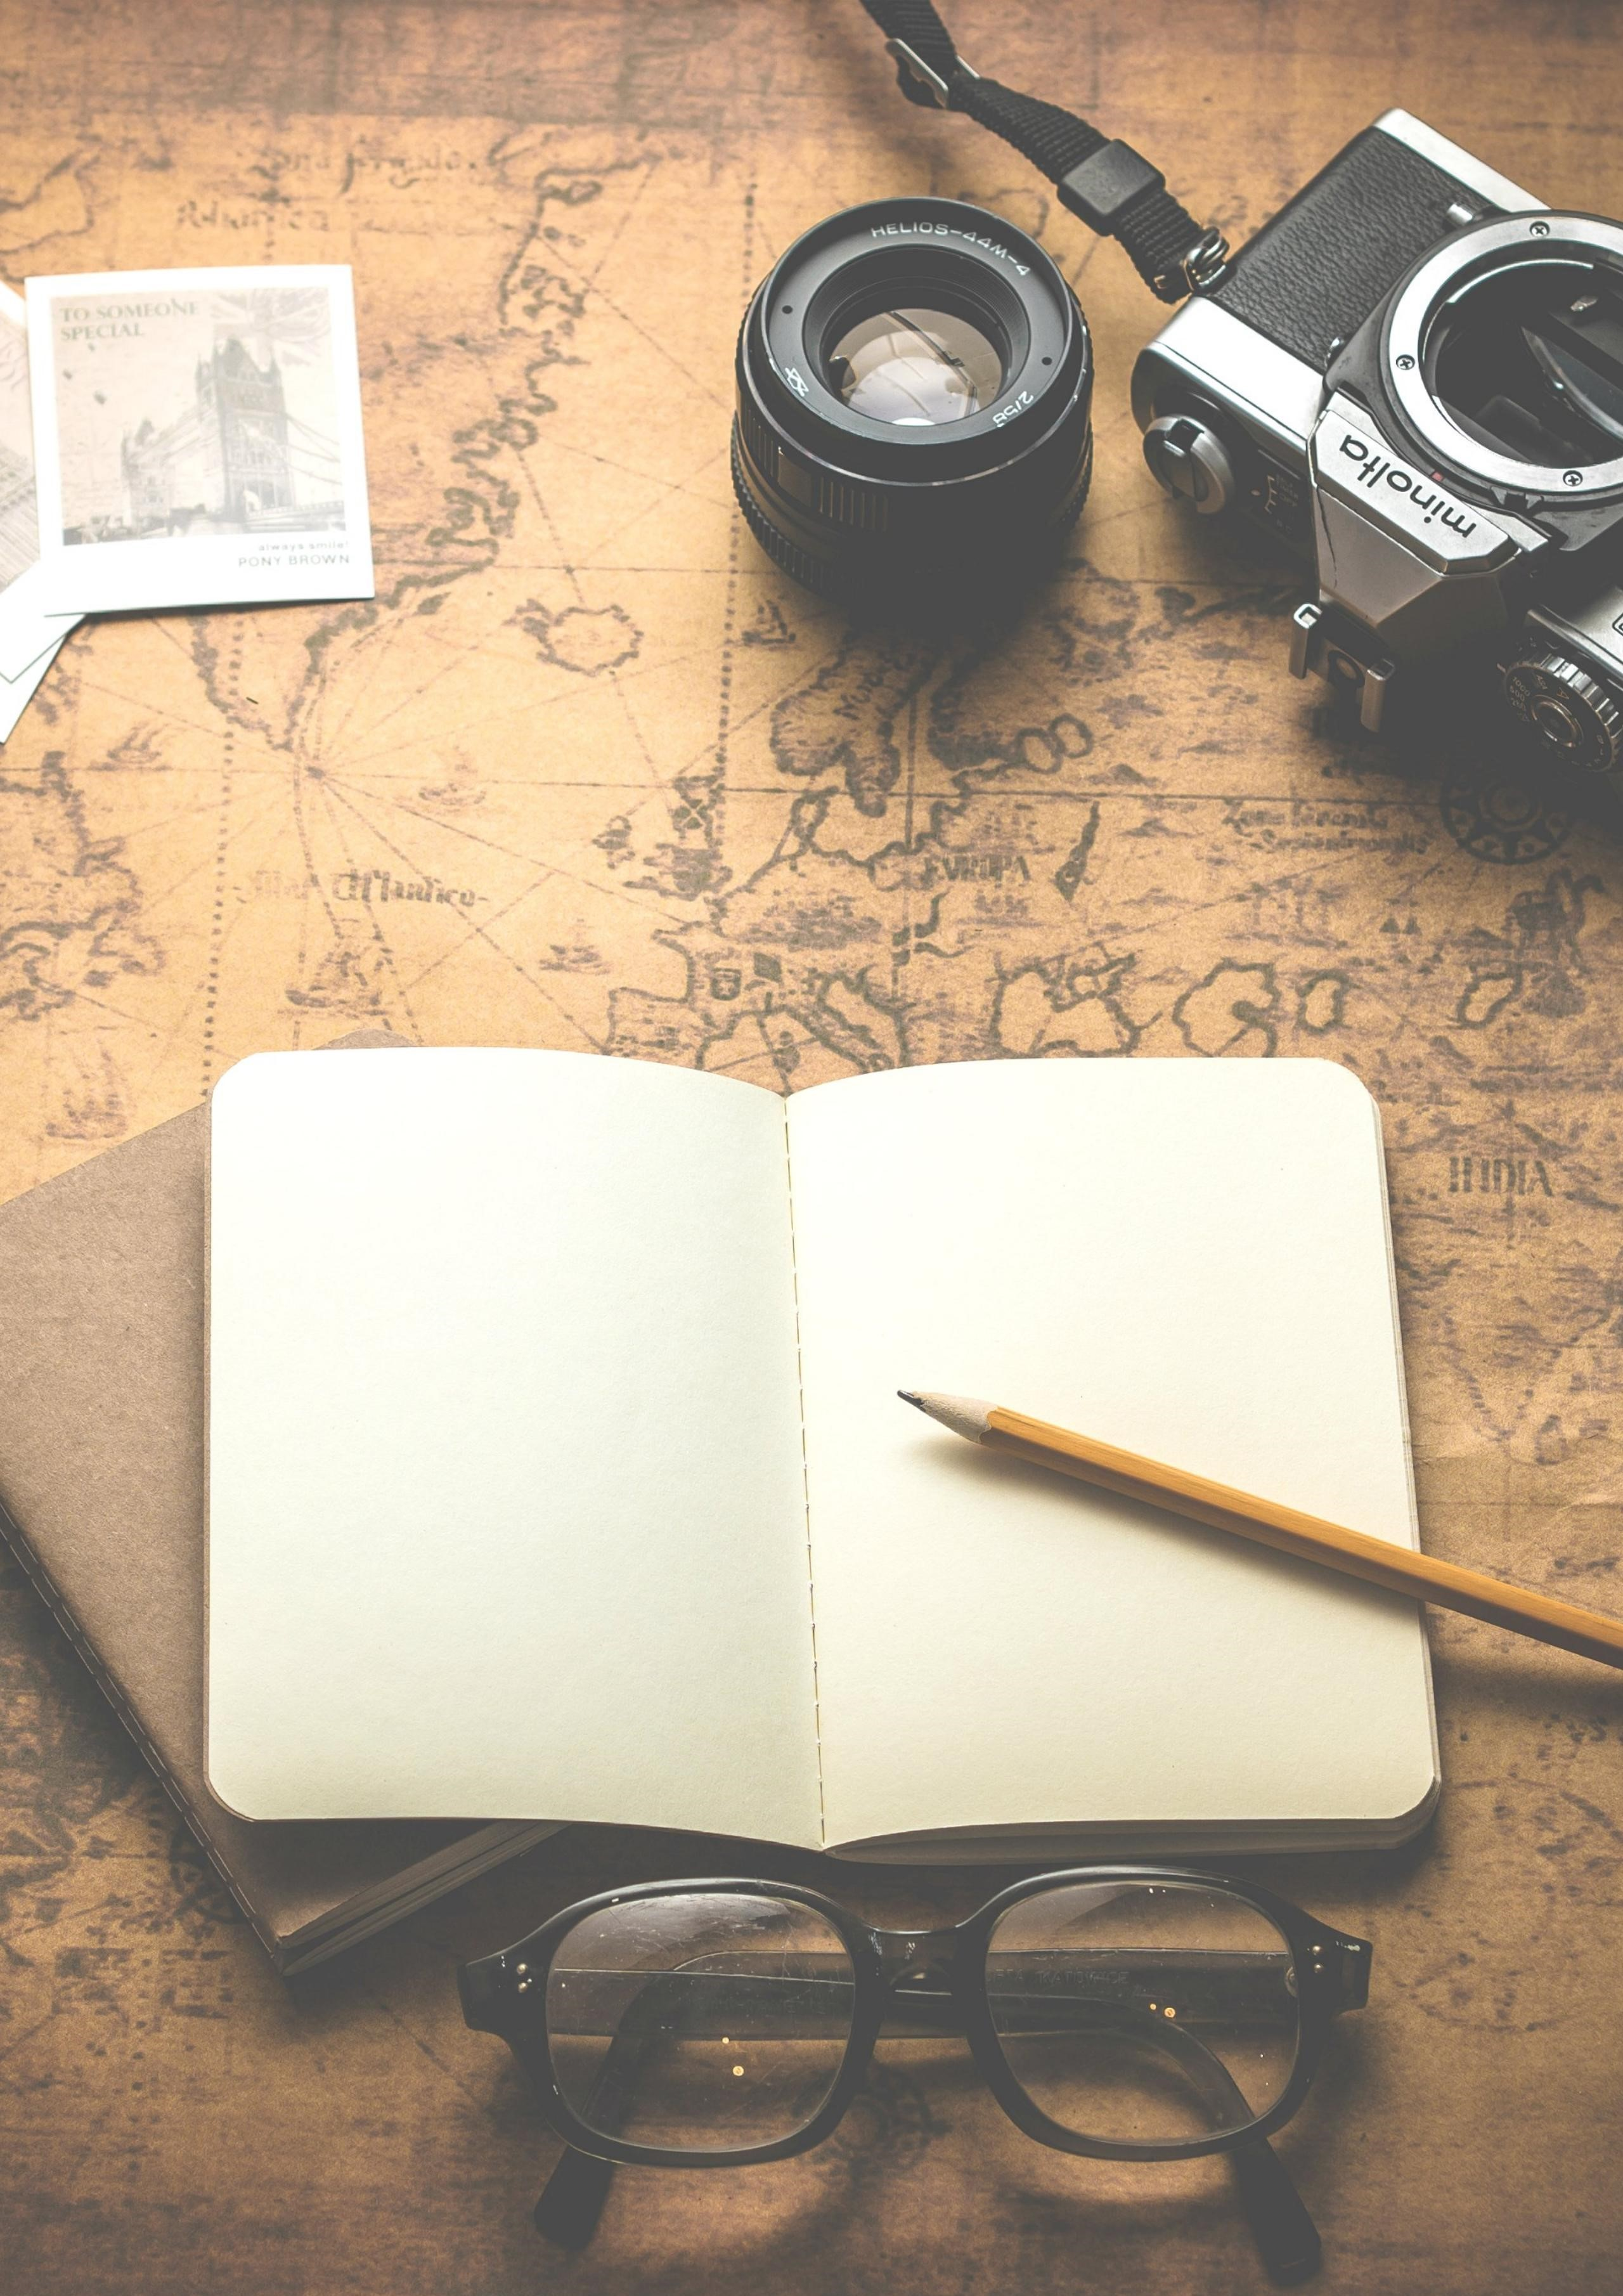 Travel essentials with a notebook, pen, camera and glasses. 3 Simple Ways Minimalism Can Help Your Life Abroad